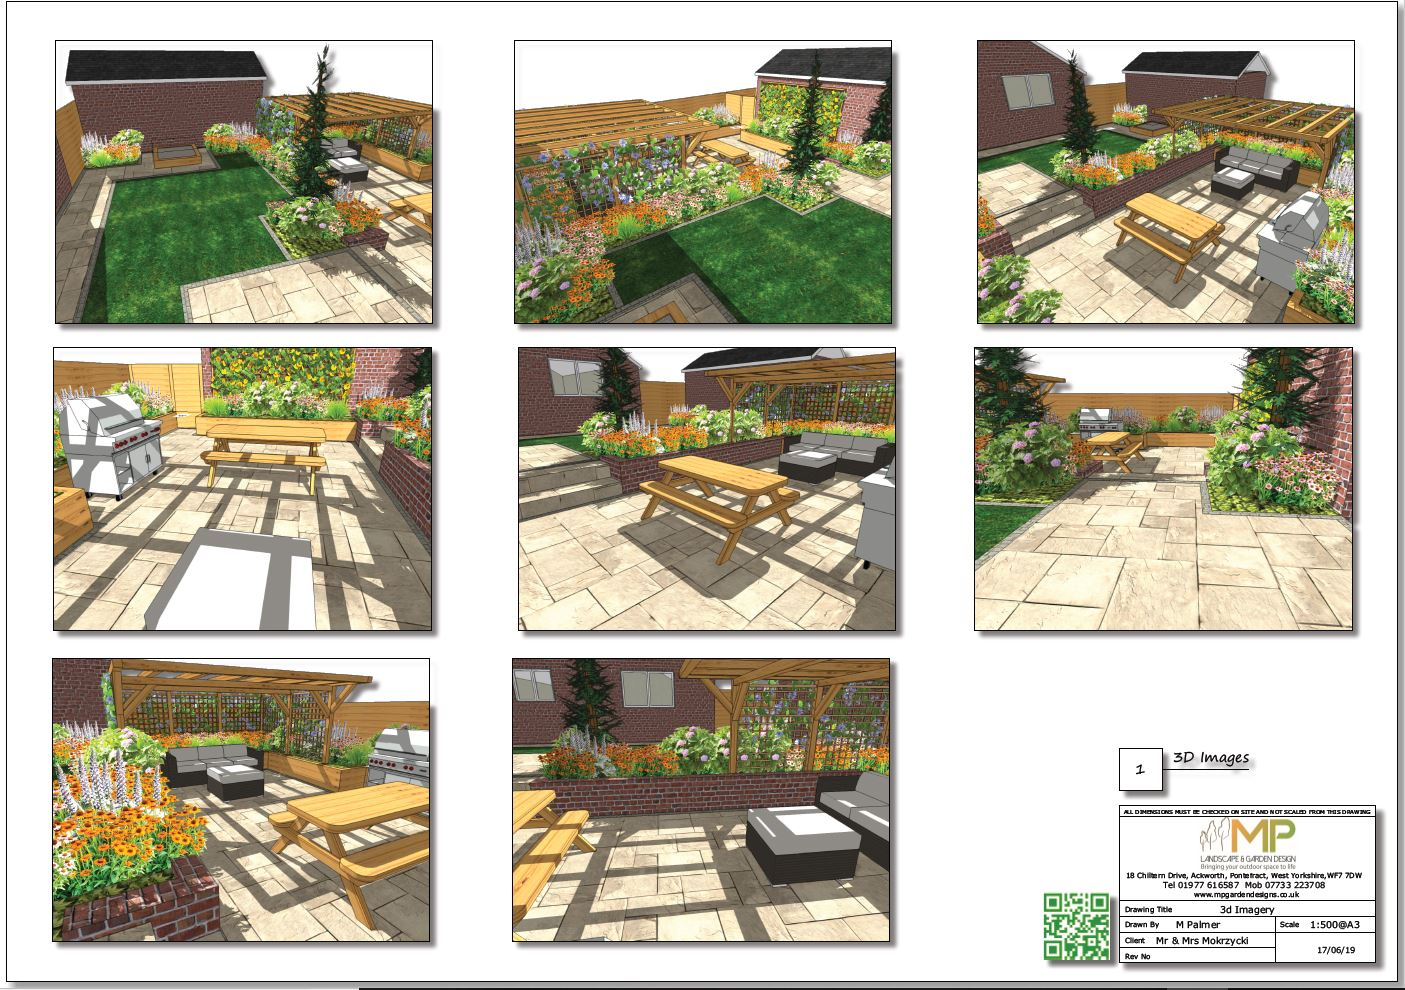 3, 3D Garden layout plan for a property in Normanton, West Yorkshire.